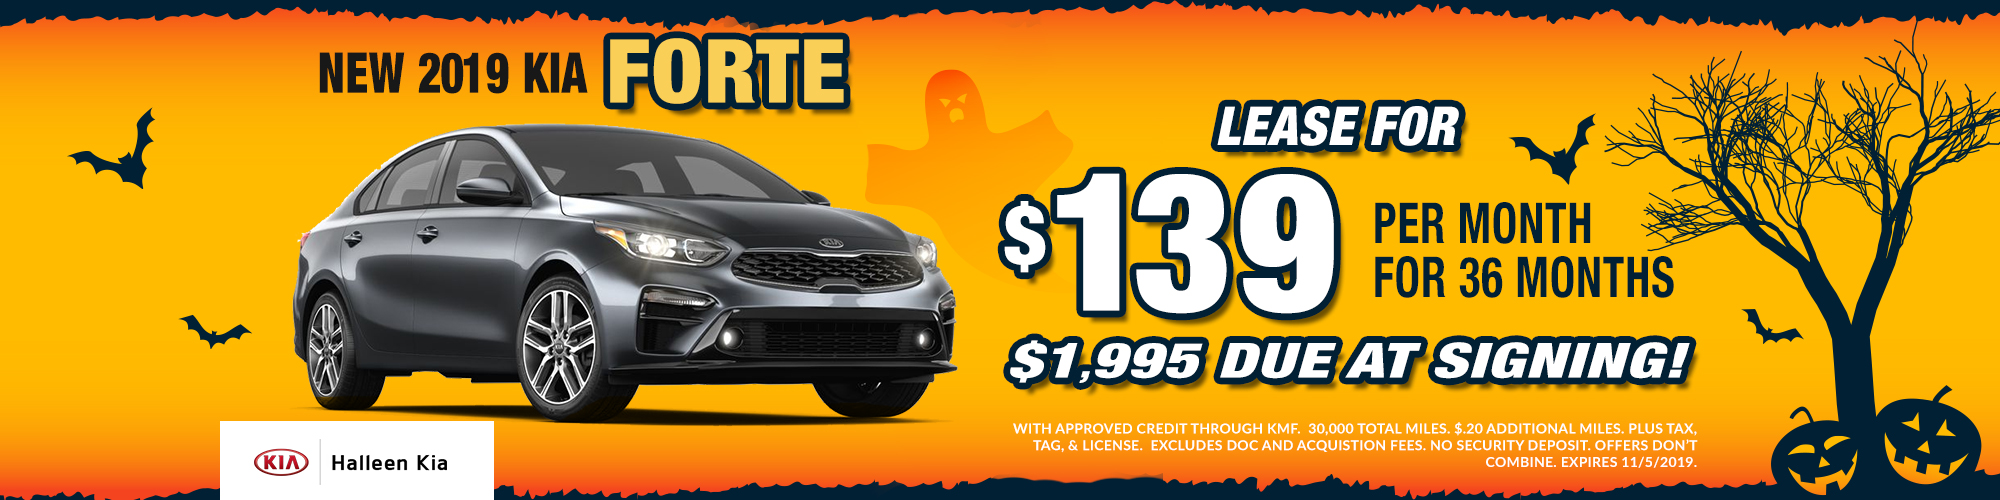 New 2019 Kia Forte - lease for $189 for 36 months with zero due at signing!